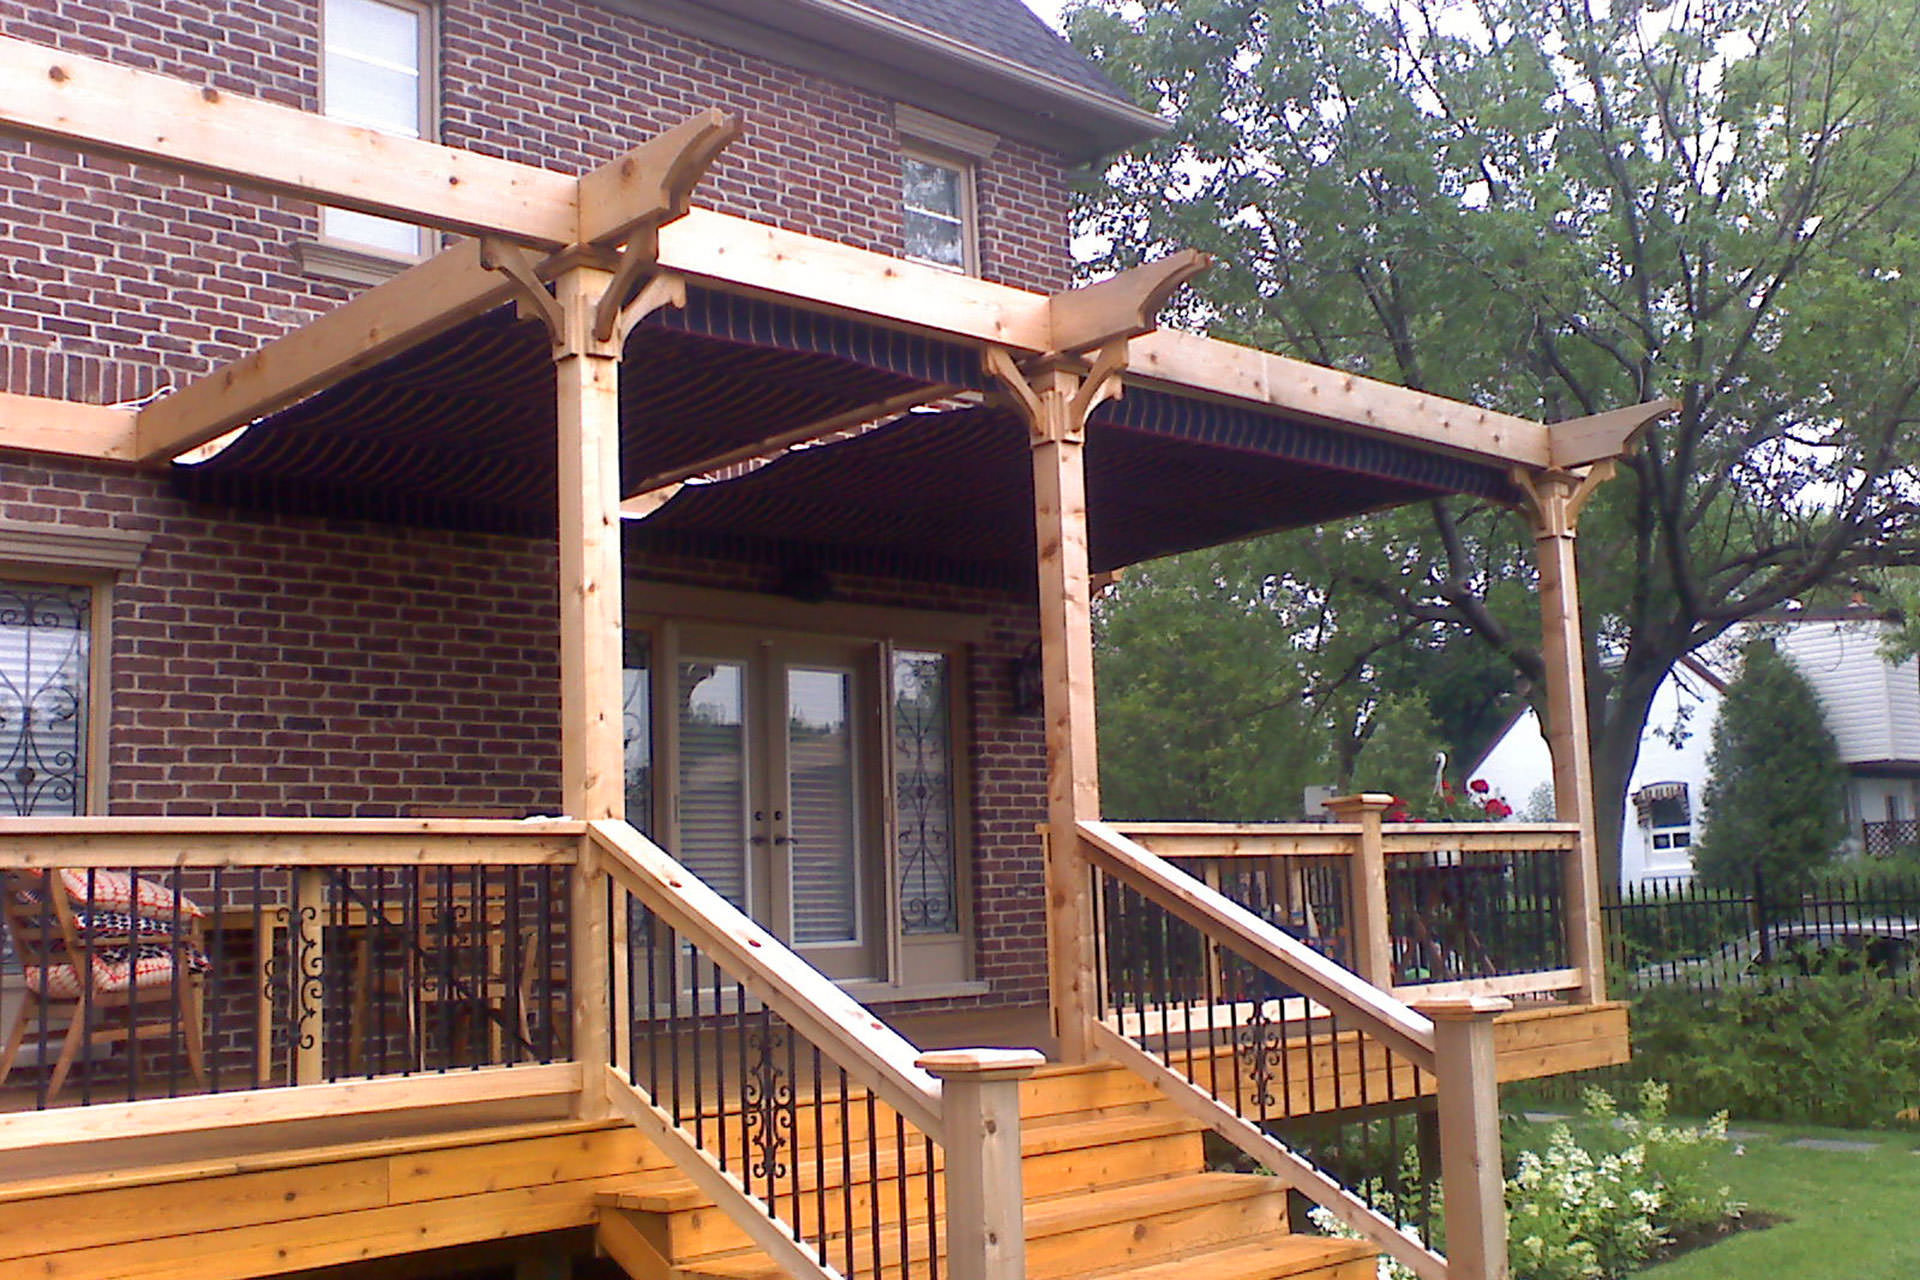 Pergola Design: Attached, Freestanding or Hybrid